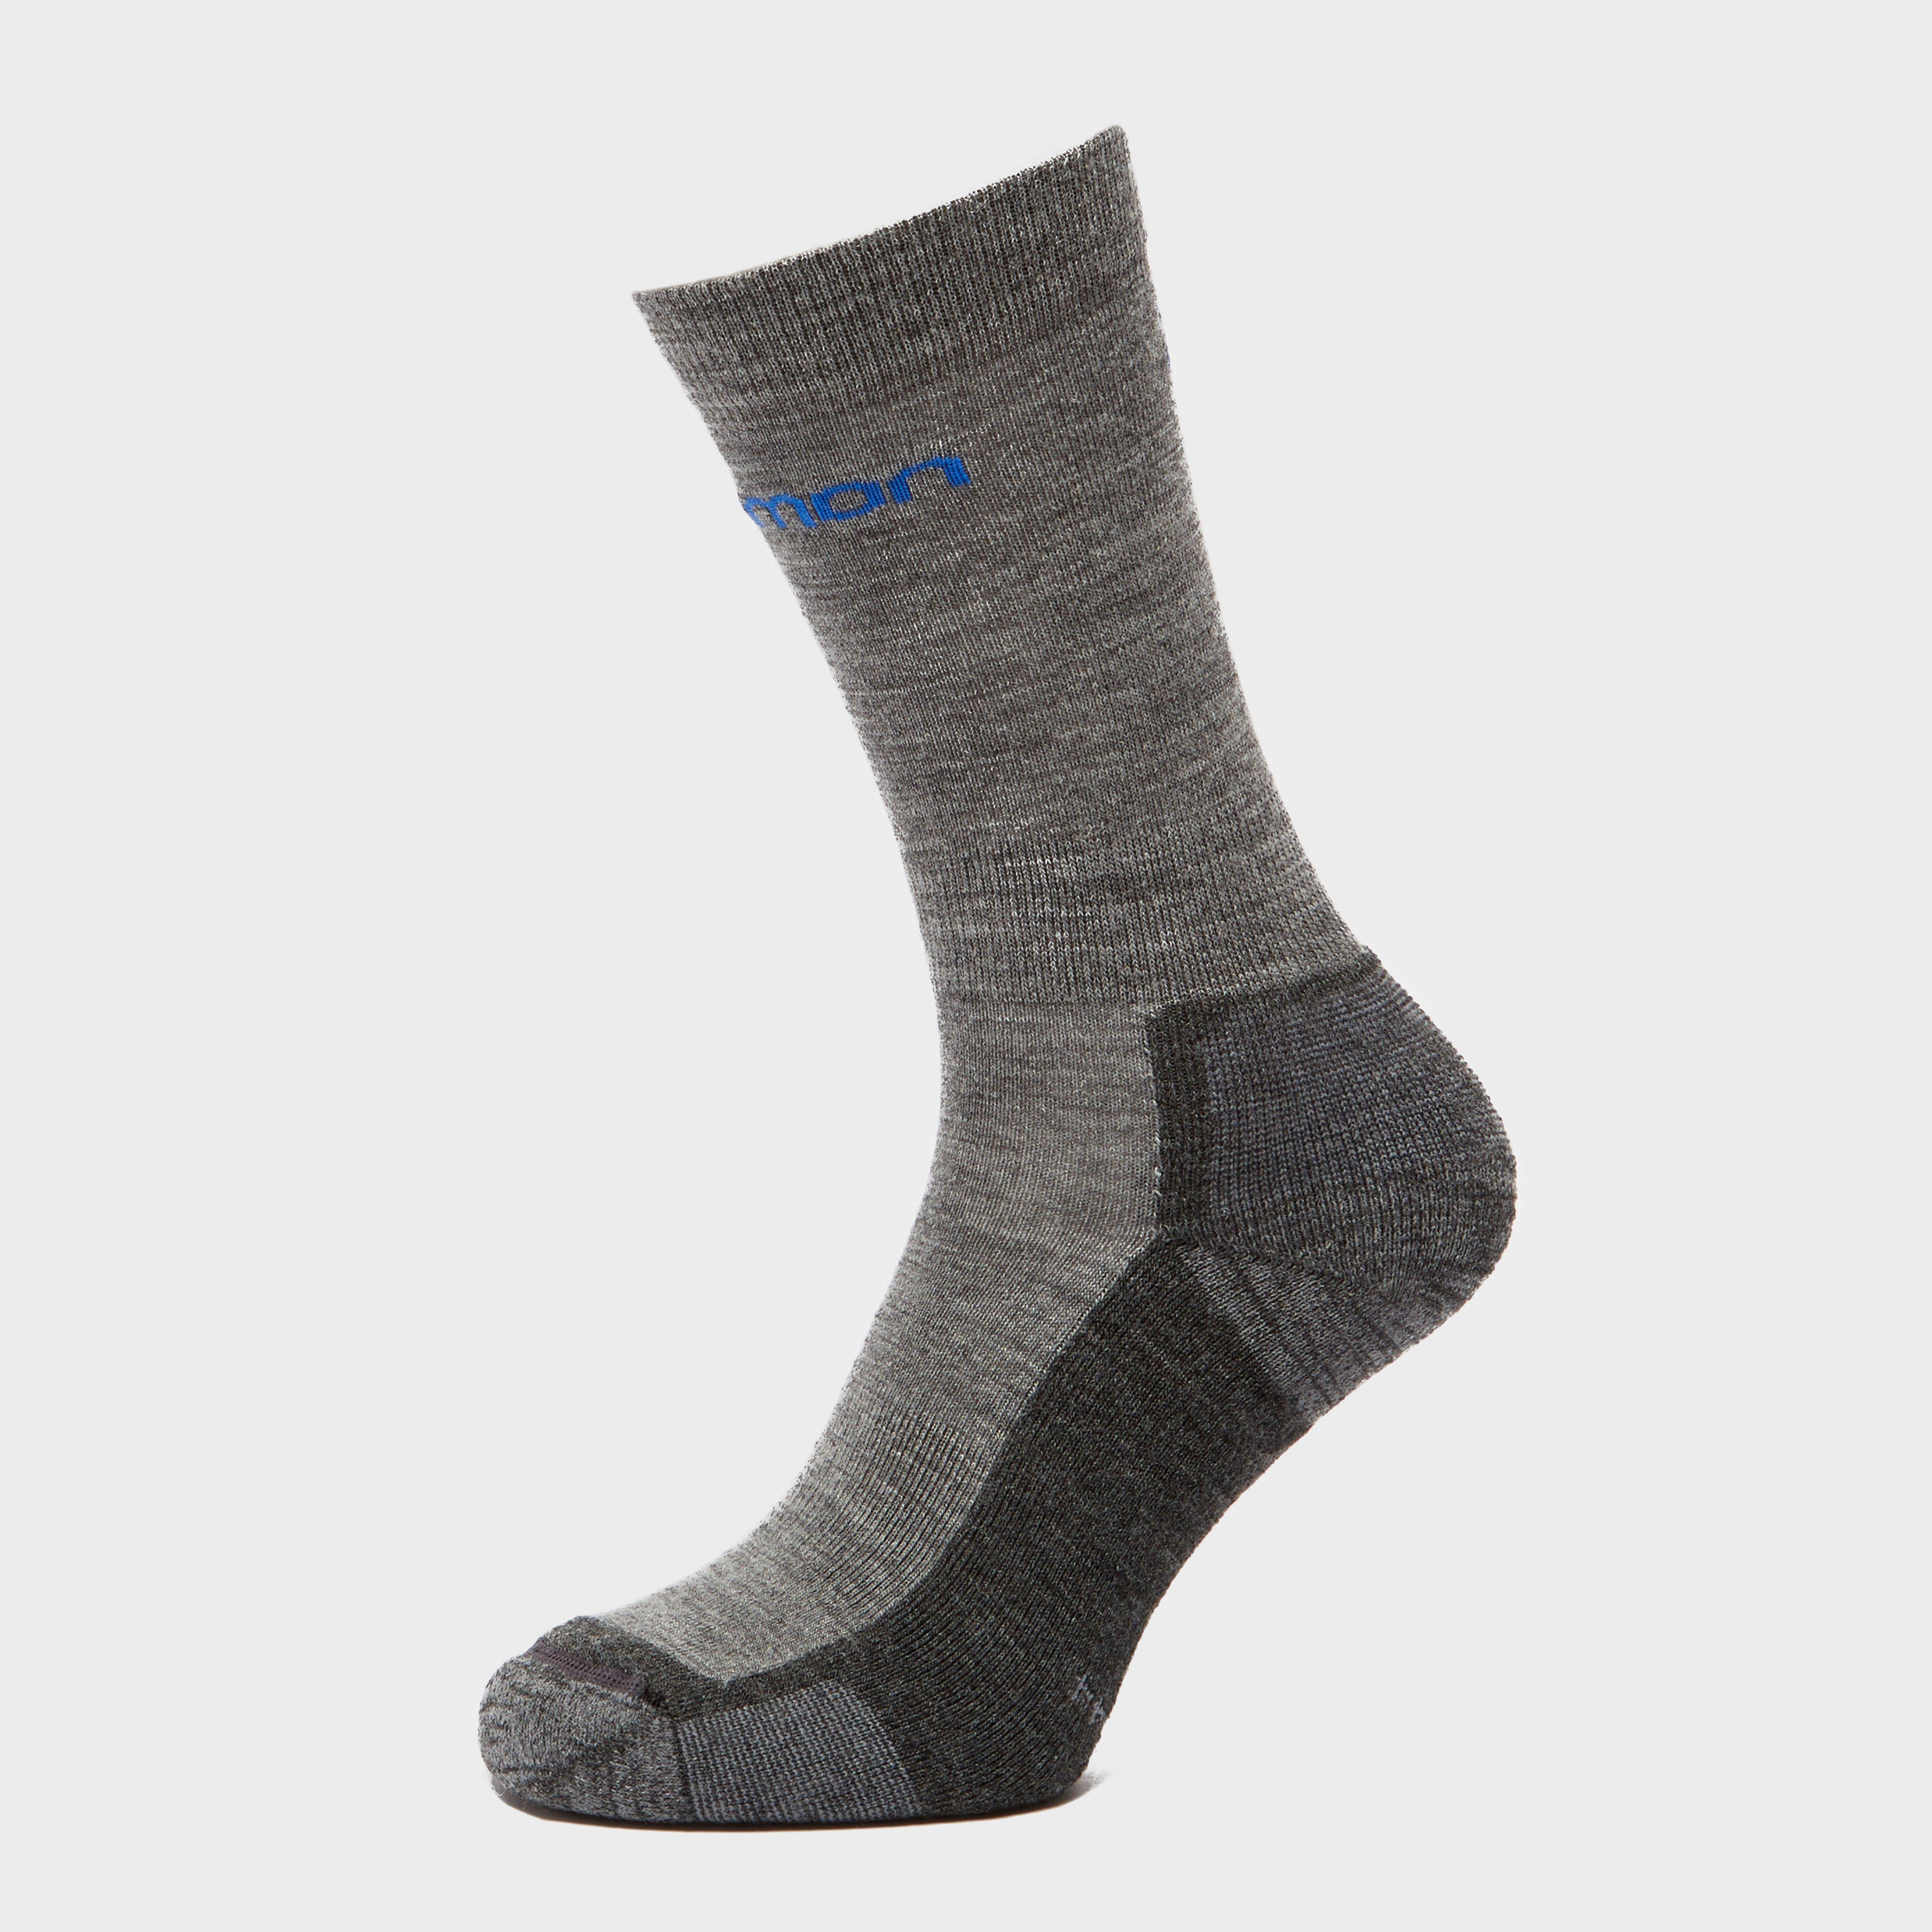 Salomon Socks Salomon Socks Mens Merino Socks 2 Pack - Grey, Grey